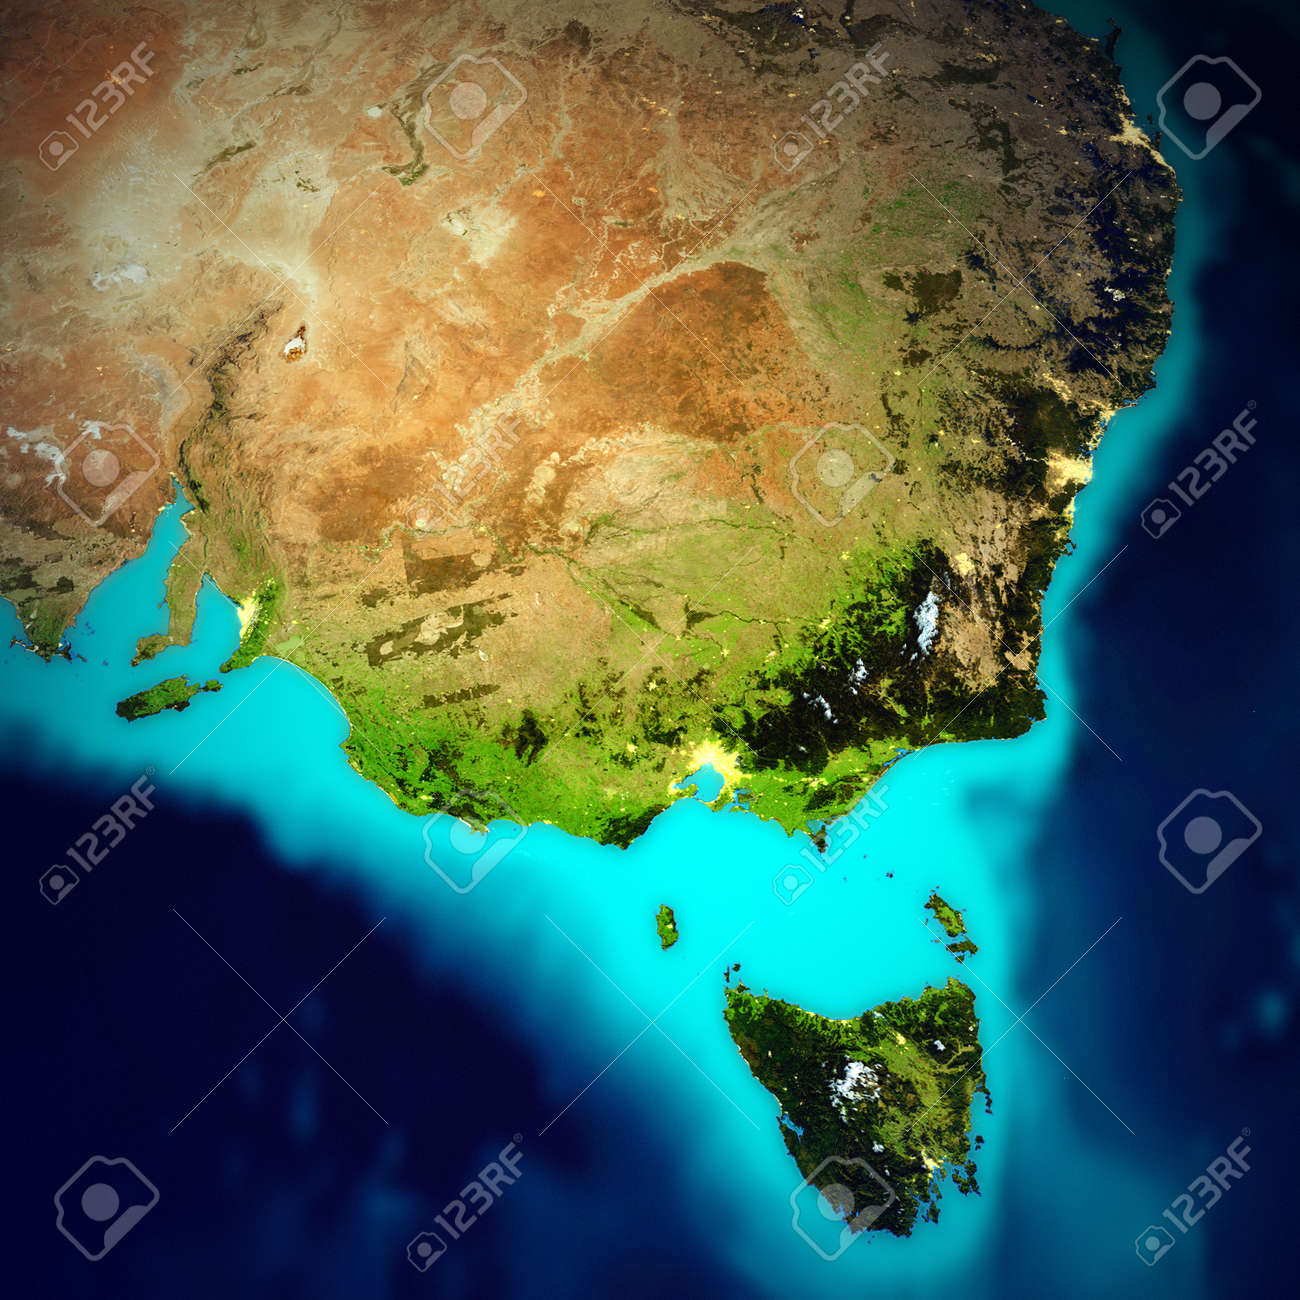 Map Of Australia From Space.Australia Space Map